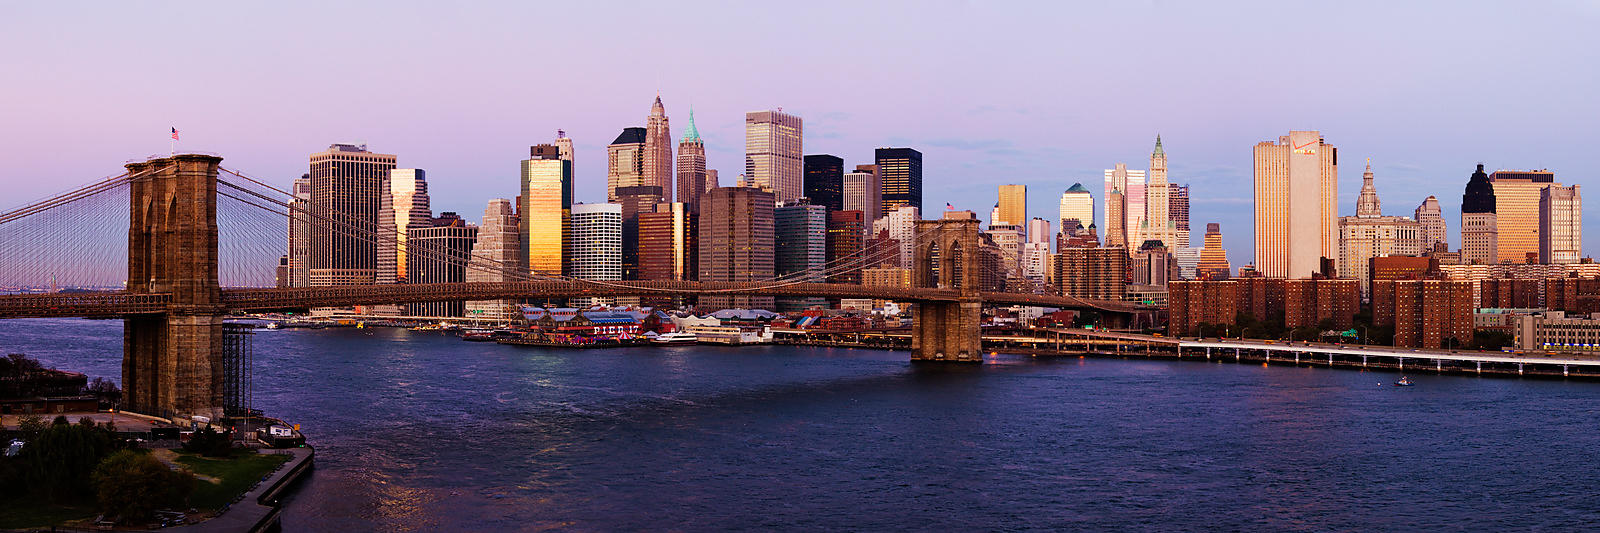 Lower Manhattan Skyline and Brooklyn Bridge at Dawn